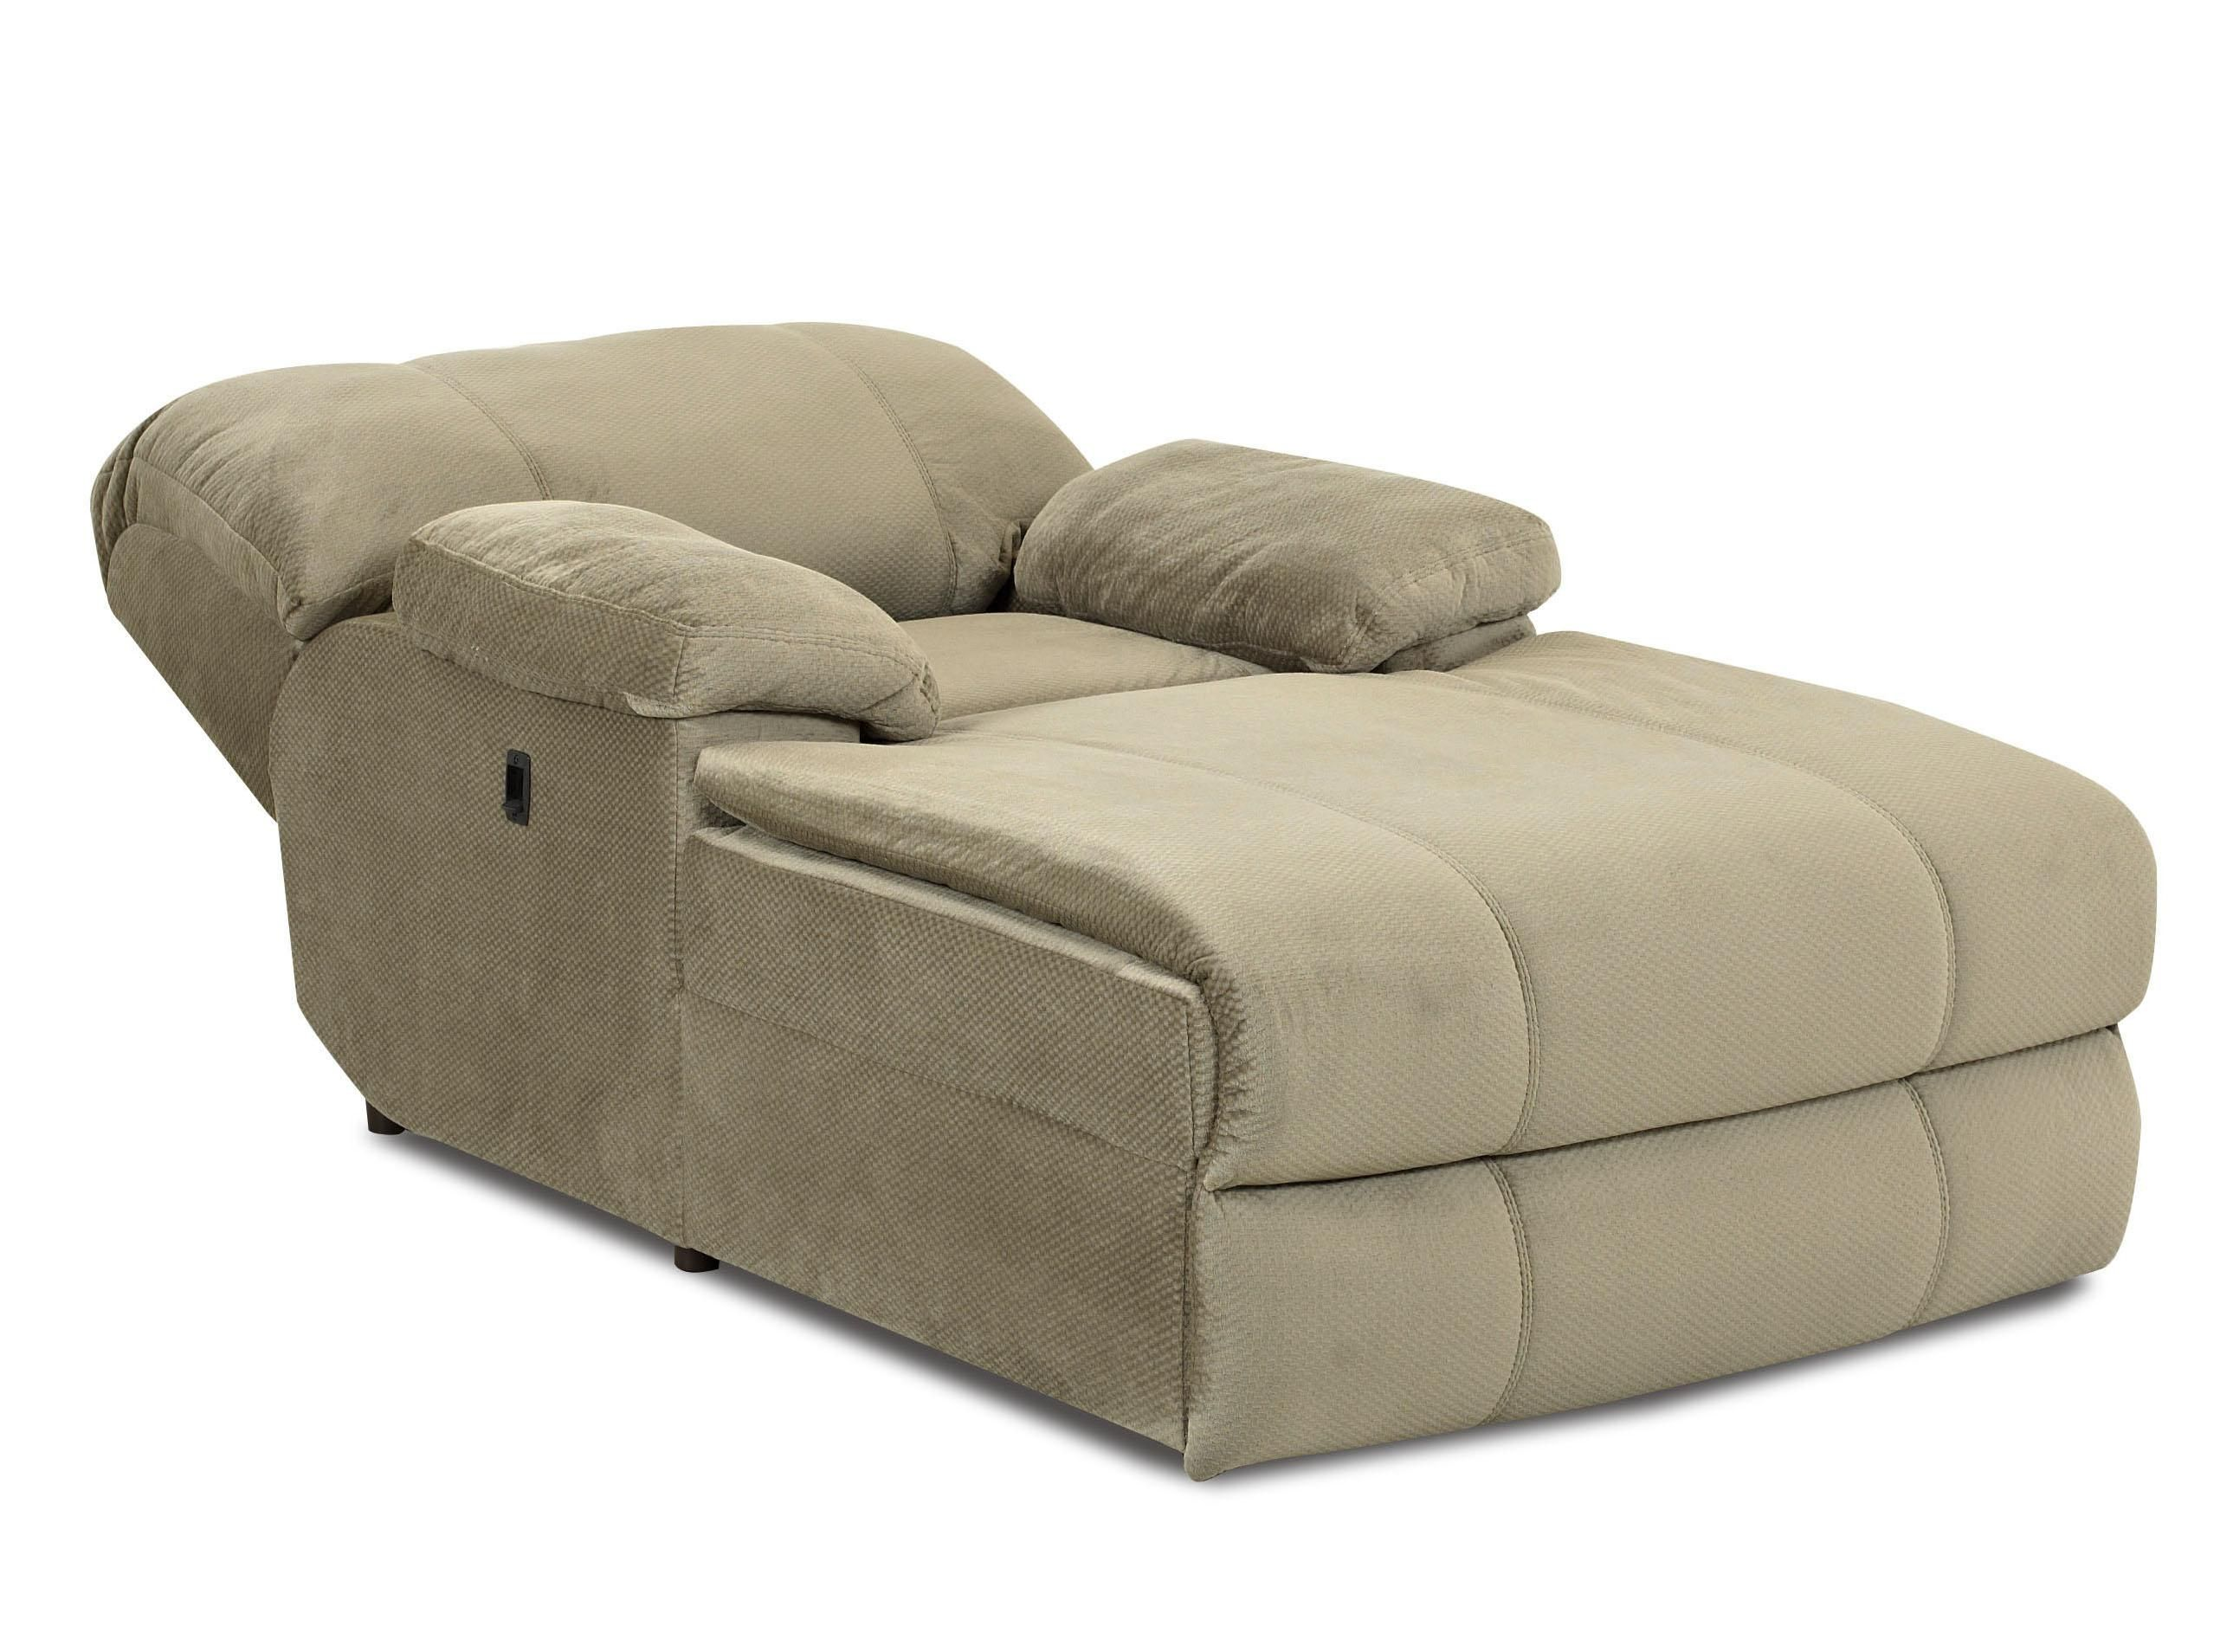 Shay Lounge Indoor Oversized Chaise Lounge Kensington Reclining